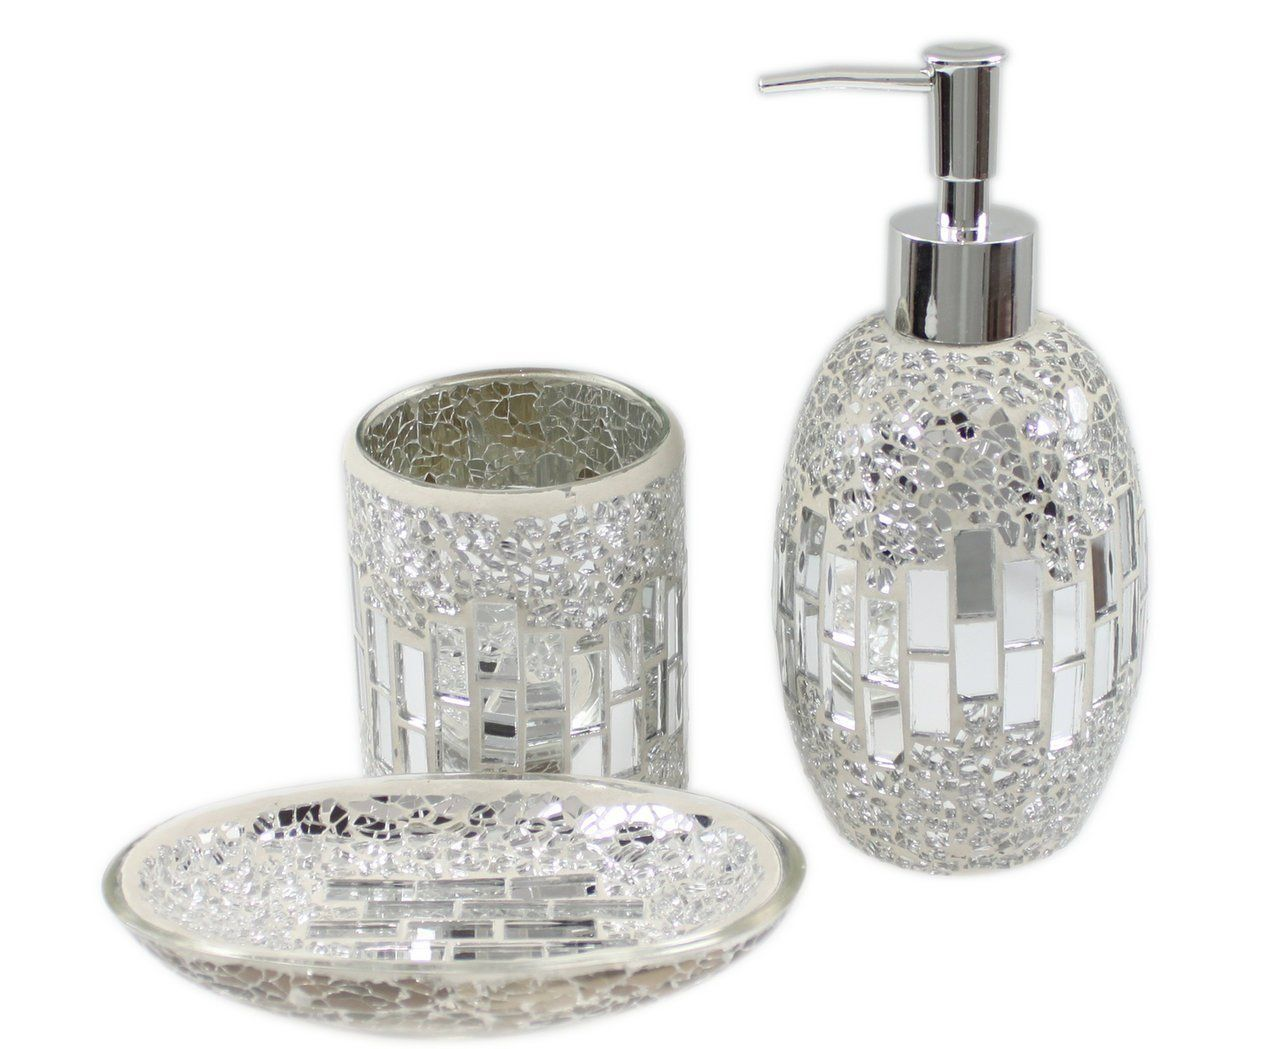 3 Piece Modern Silver Chrome Sparkle Mosaic Glass Tile Bathroom ...